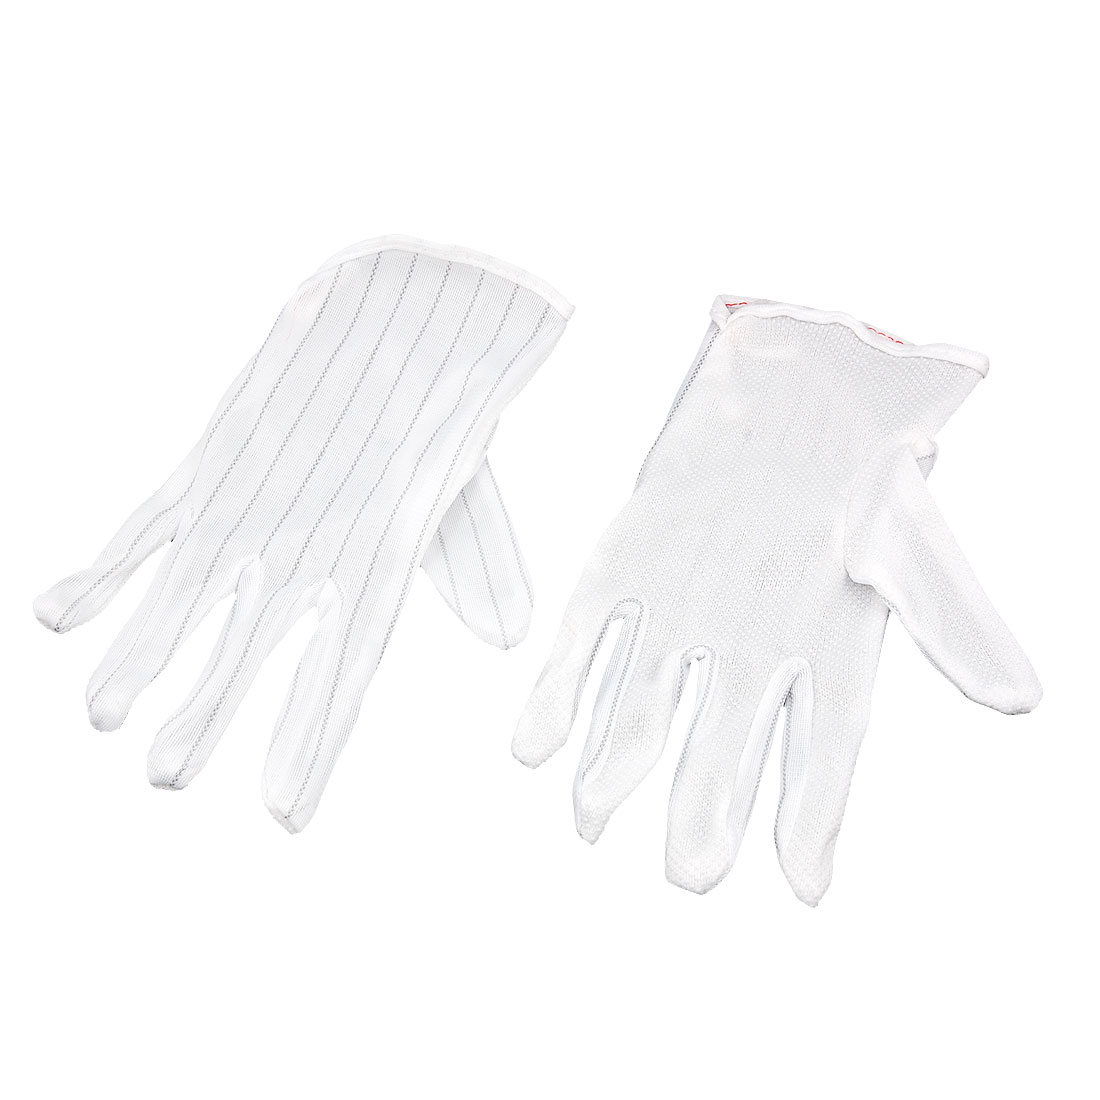 Adult Antislip Gloves White for Cycling Fishing Golf